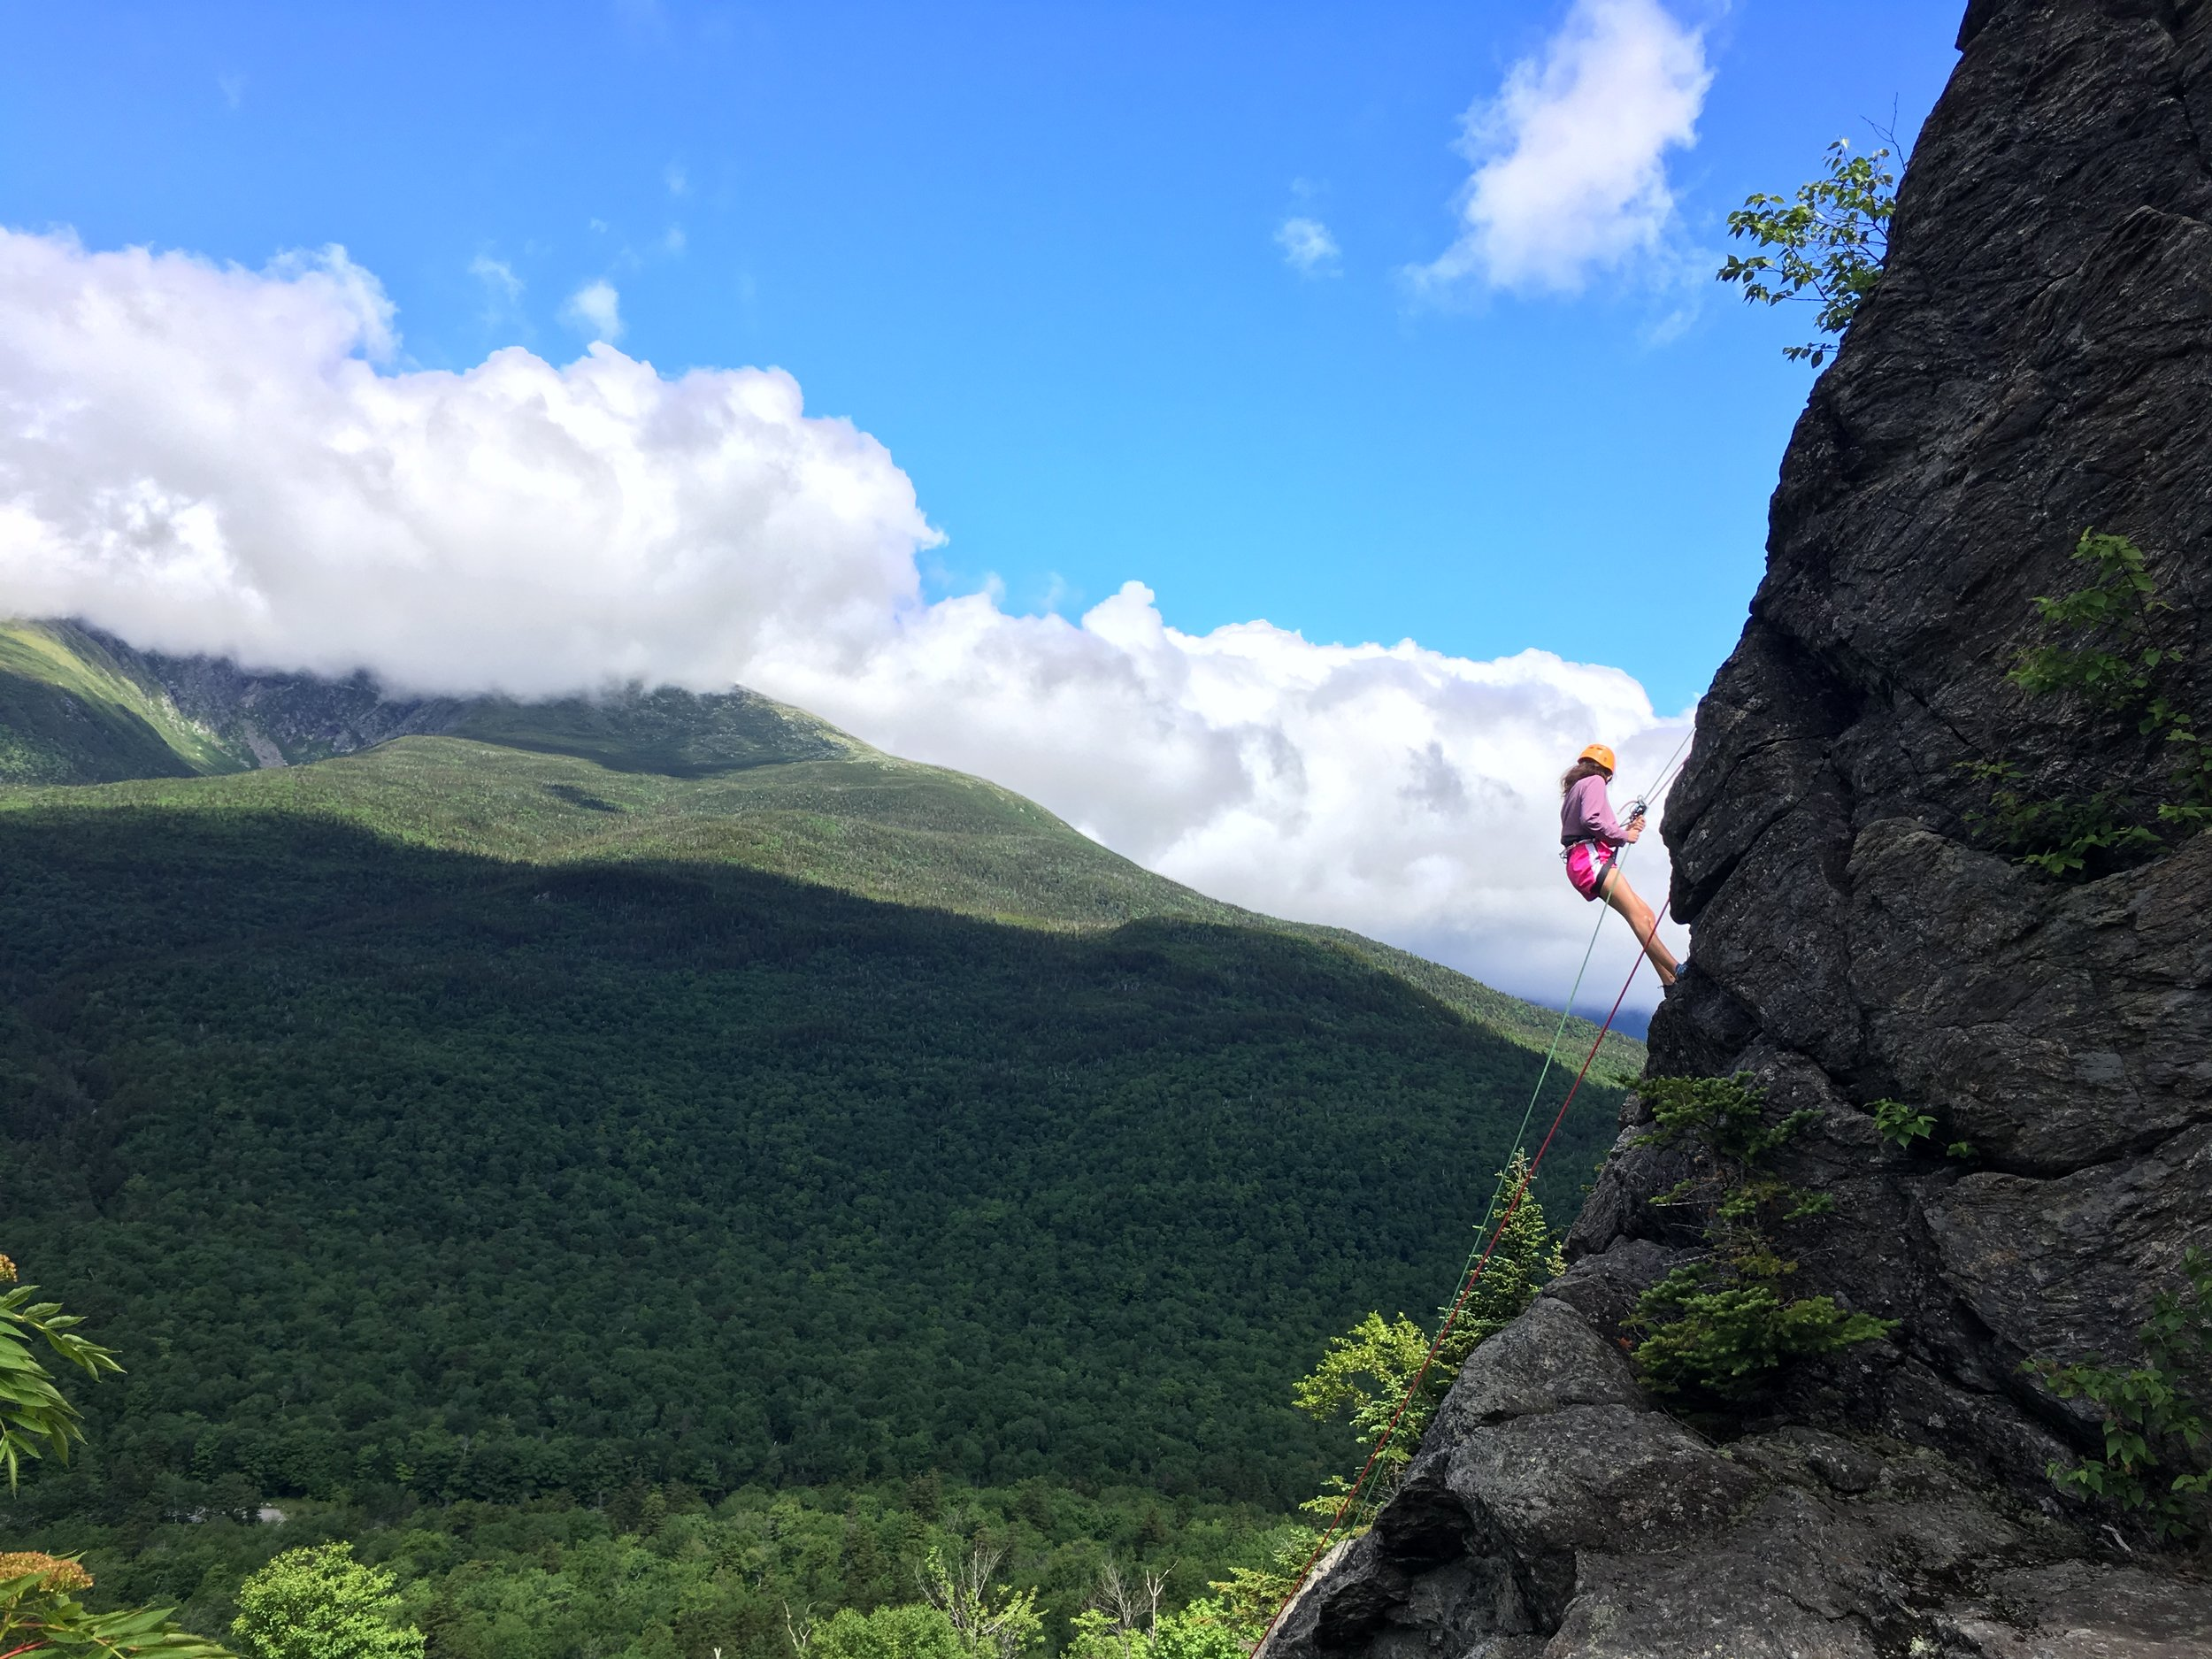 Young-Girl-Rock-Climbing.JPG